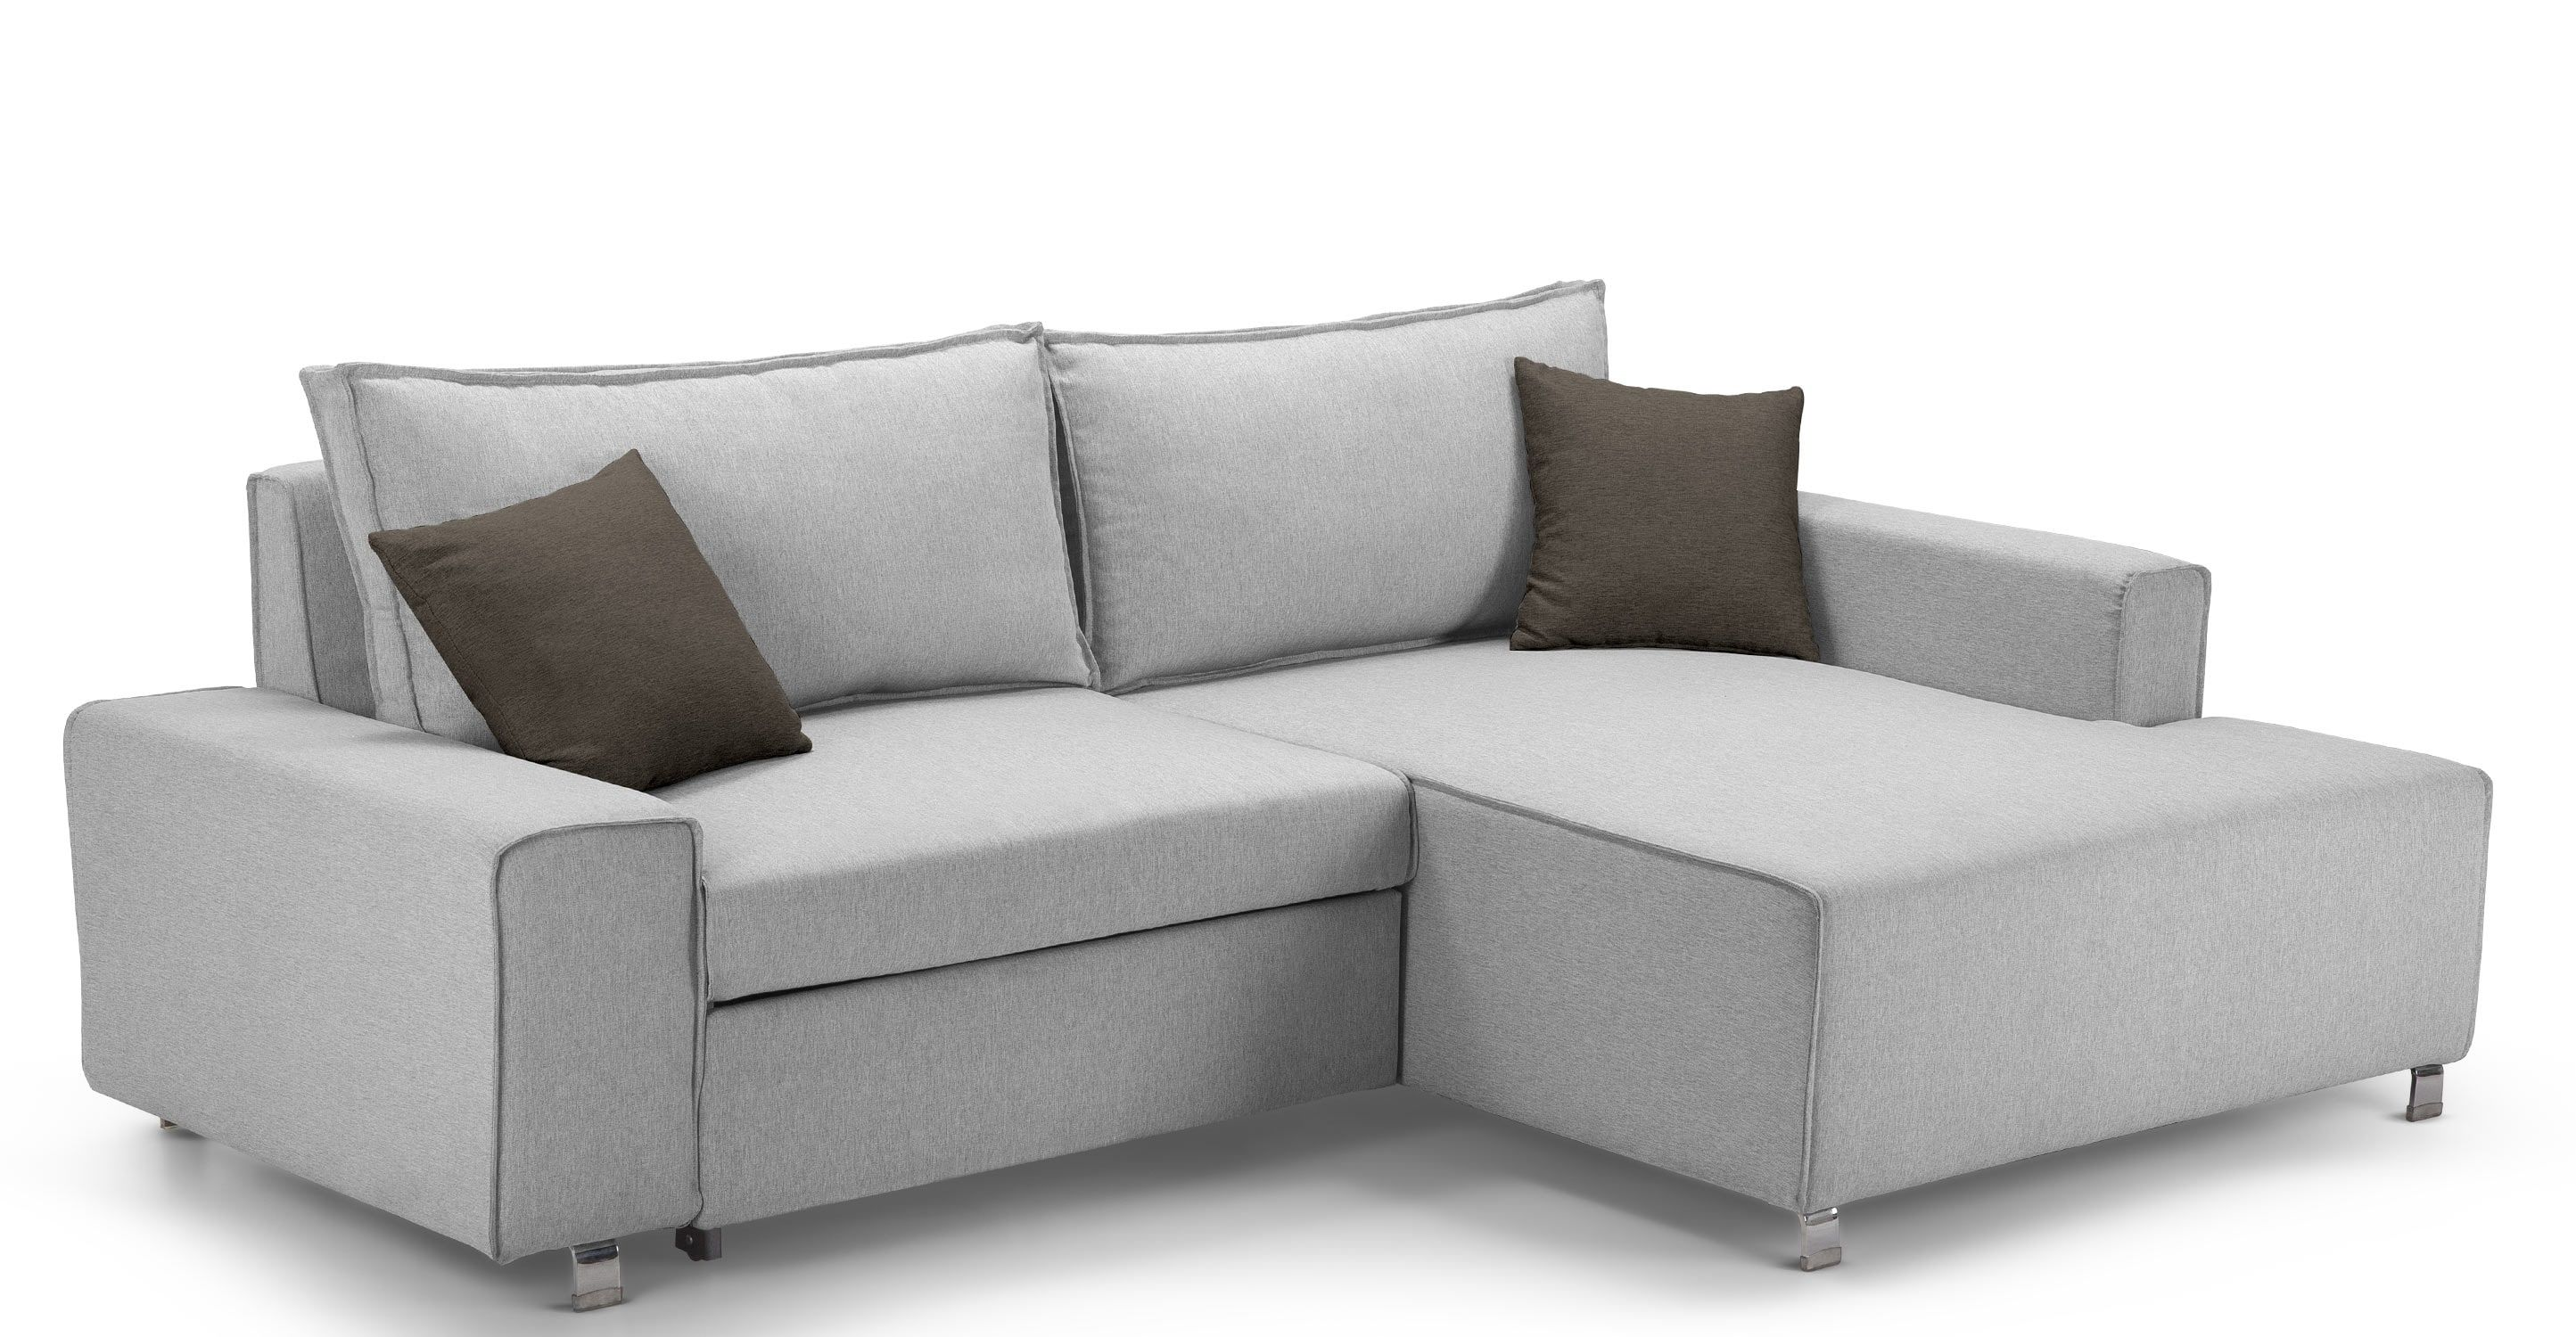 Mayne Canape D Angle Droit Convertible Gris Silex Small Corner Couch Sofa Bed Sale Corner Sofa